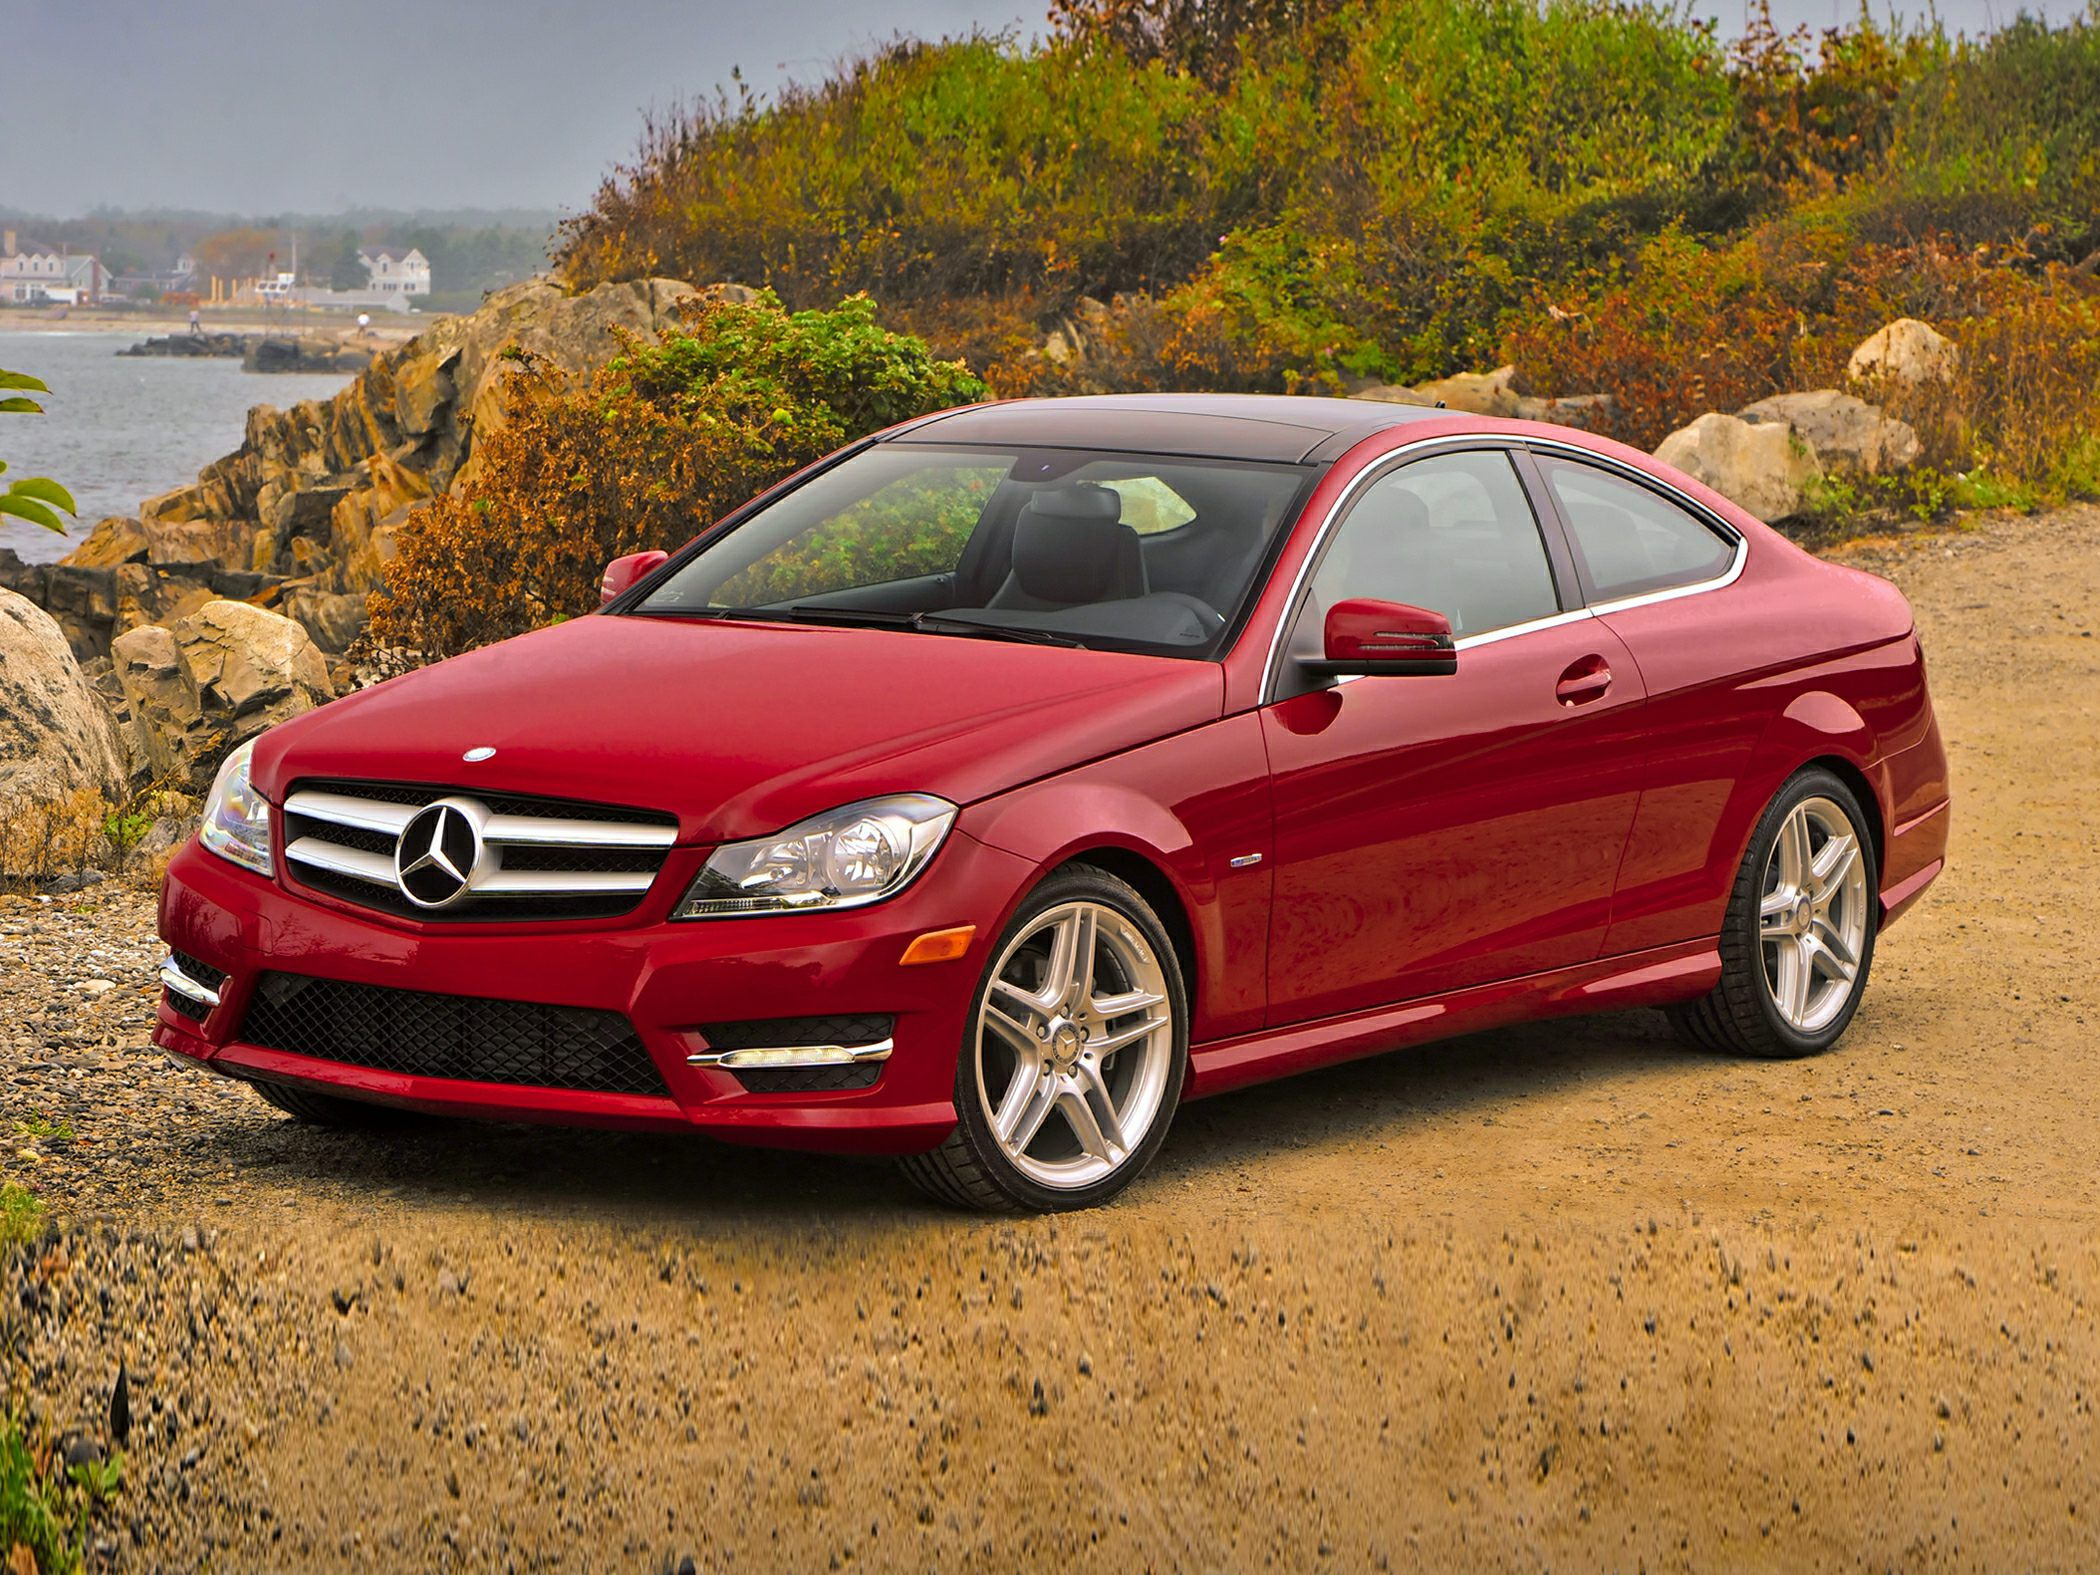 Mercedes-Benz C-Class C250 Luxury #43